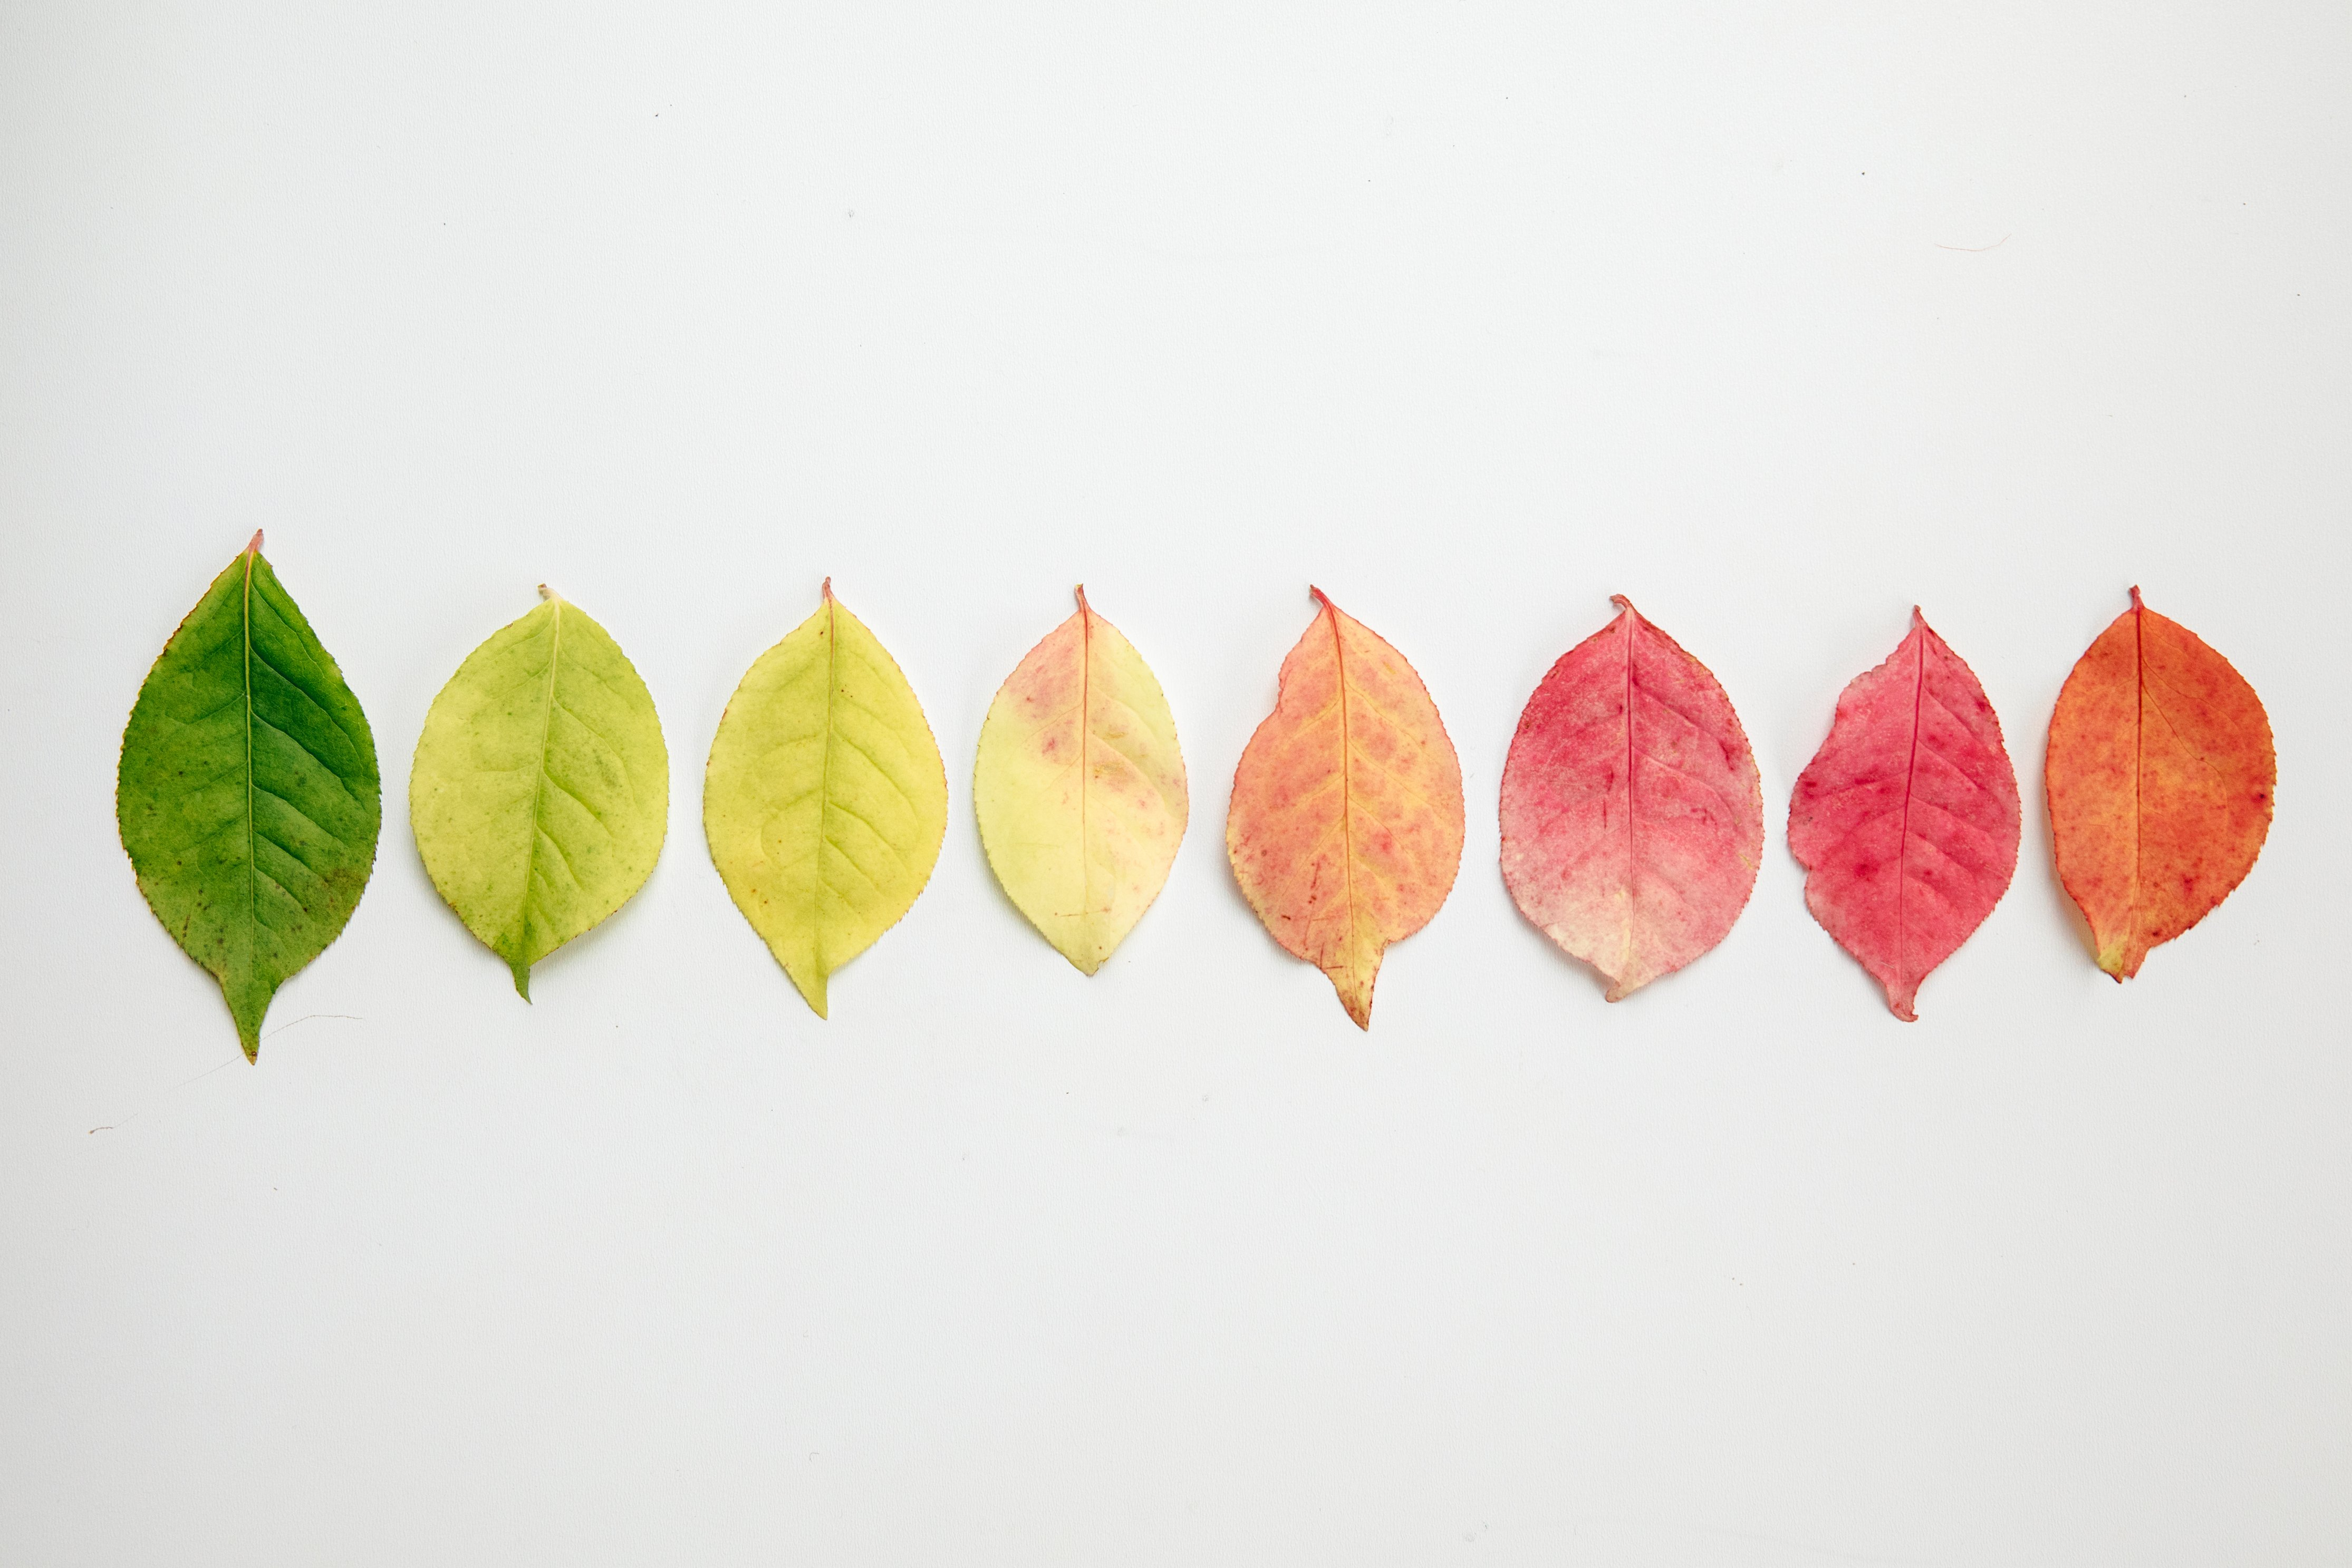 flat lay of autumn leaves changing colour. This image was taken by Matthew Henry on Burst